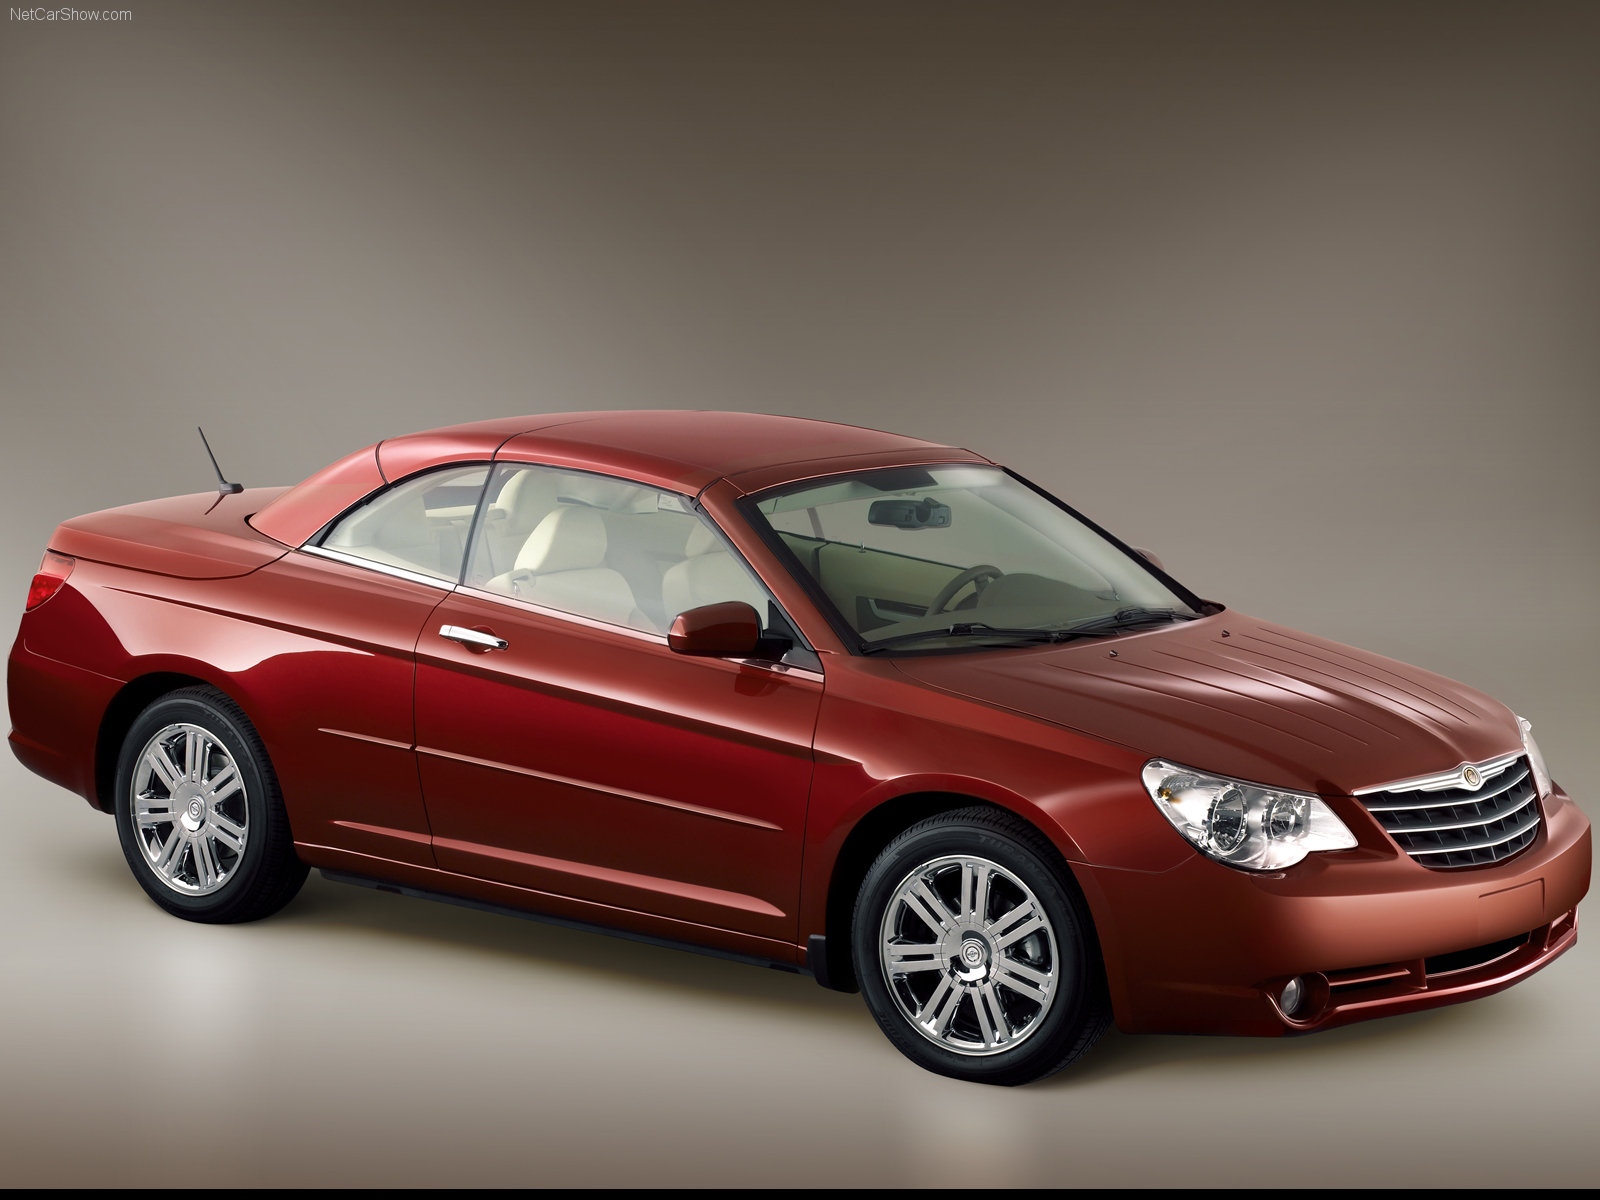 Chrysler Sebring Convertible photo 39656